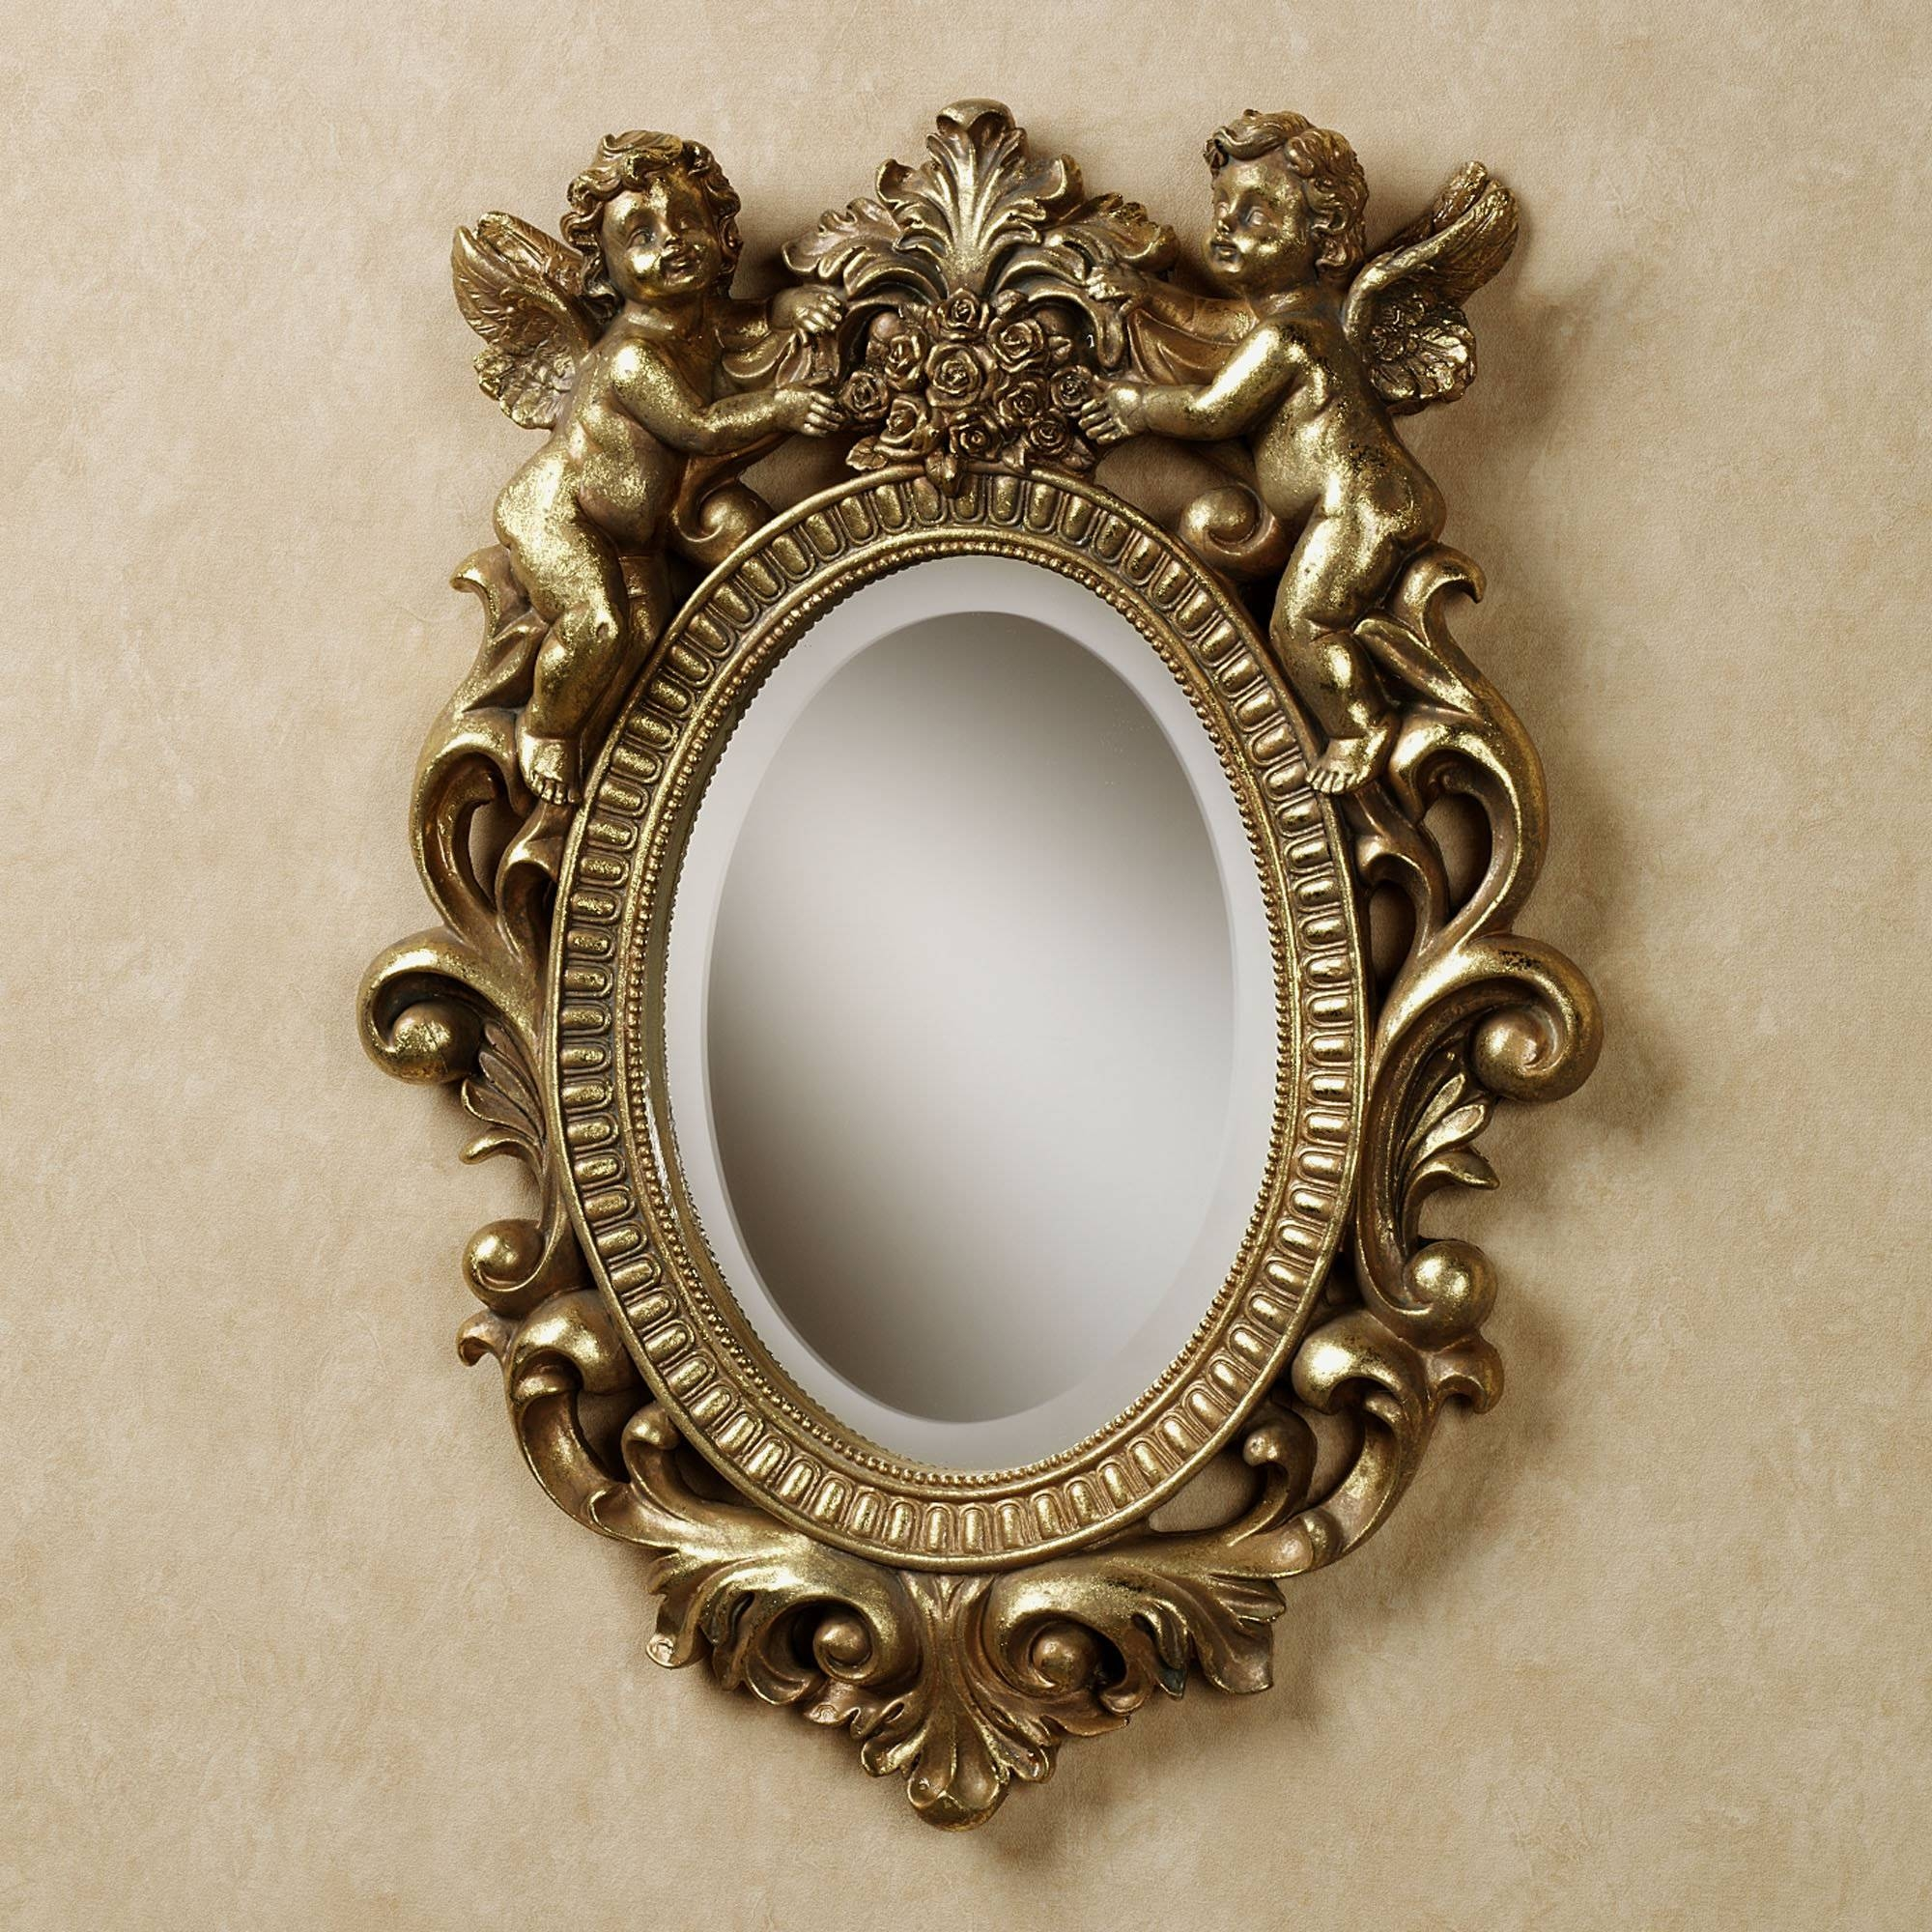 Antique Mirror Design With Regard To Antique Mirrors (View 8 of 25)